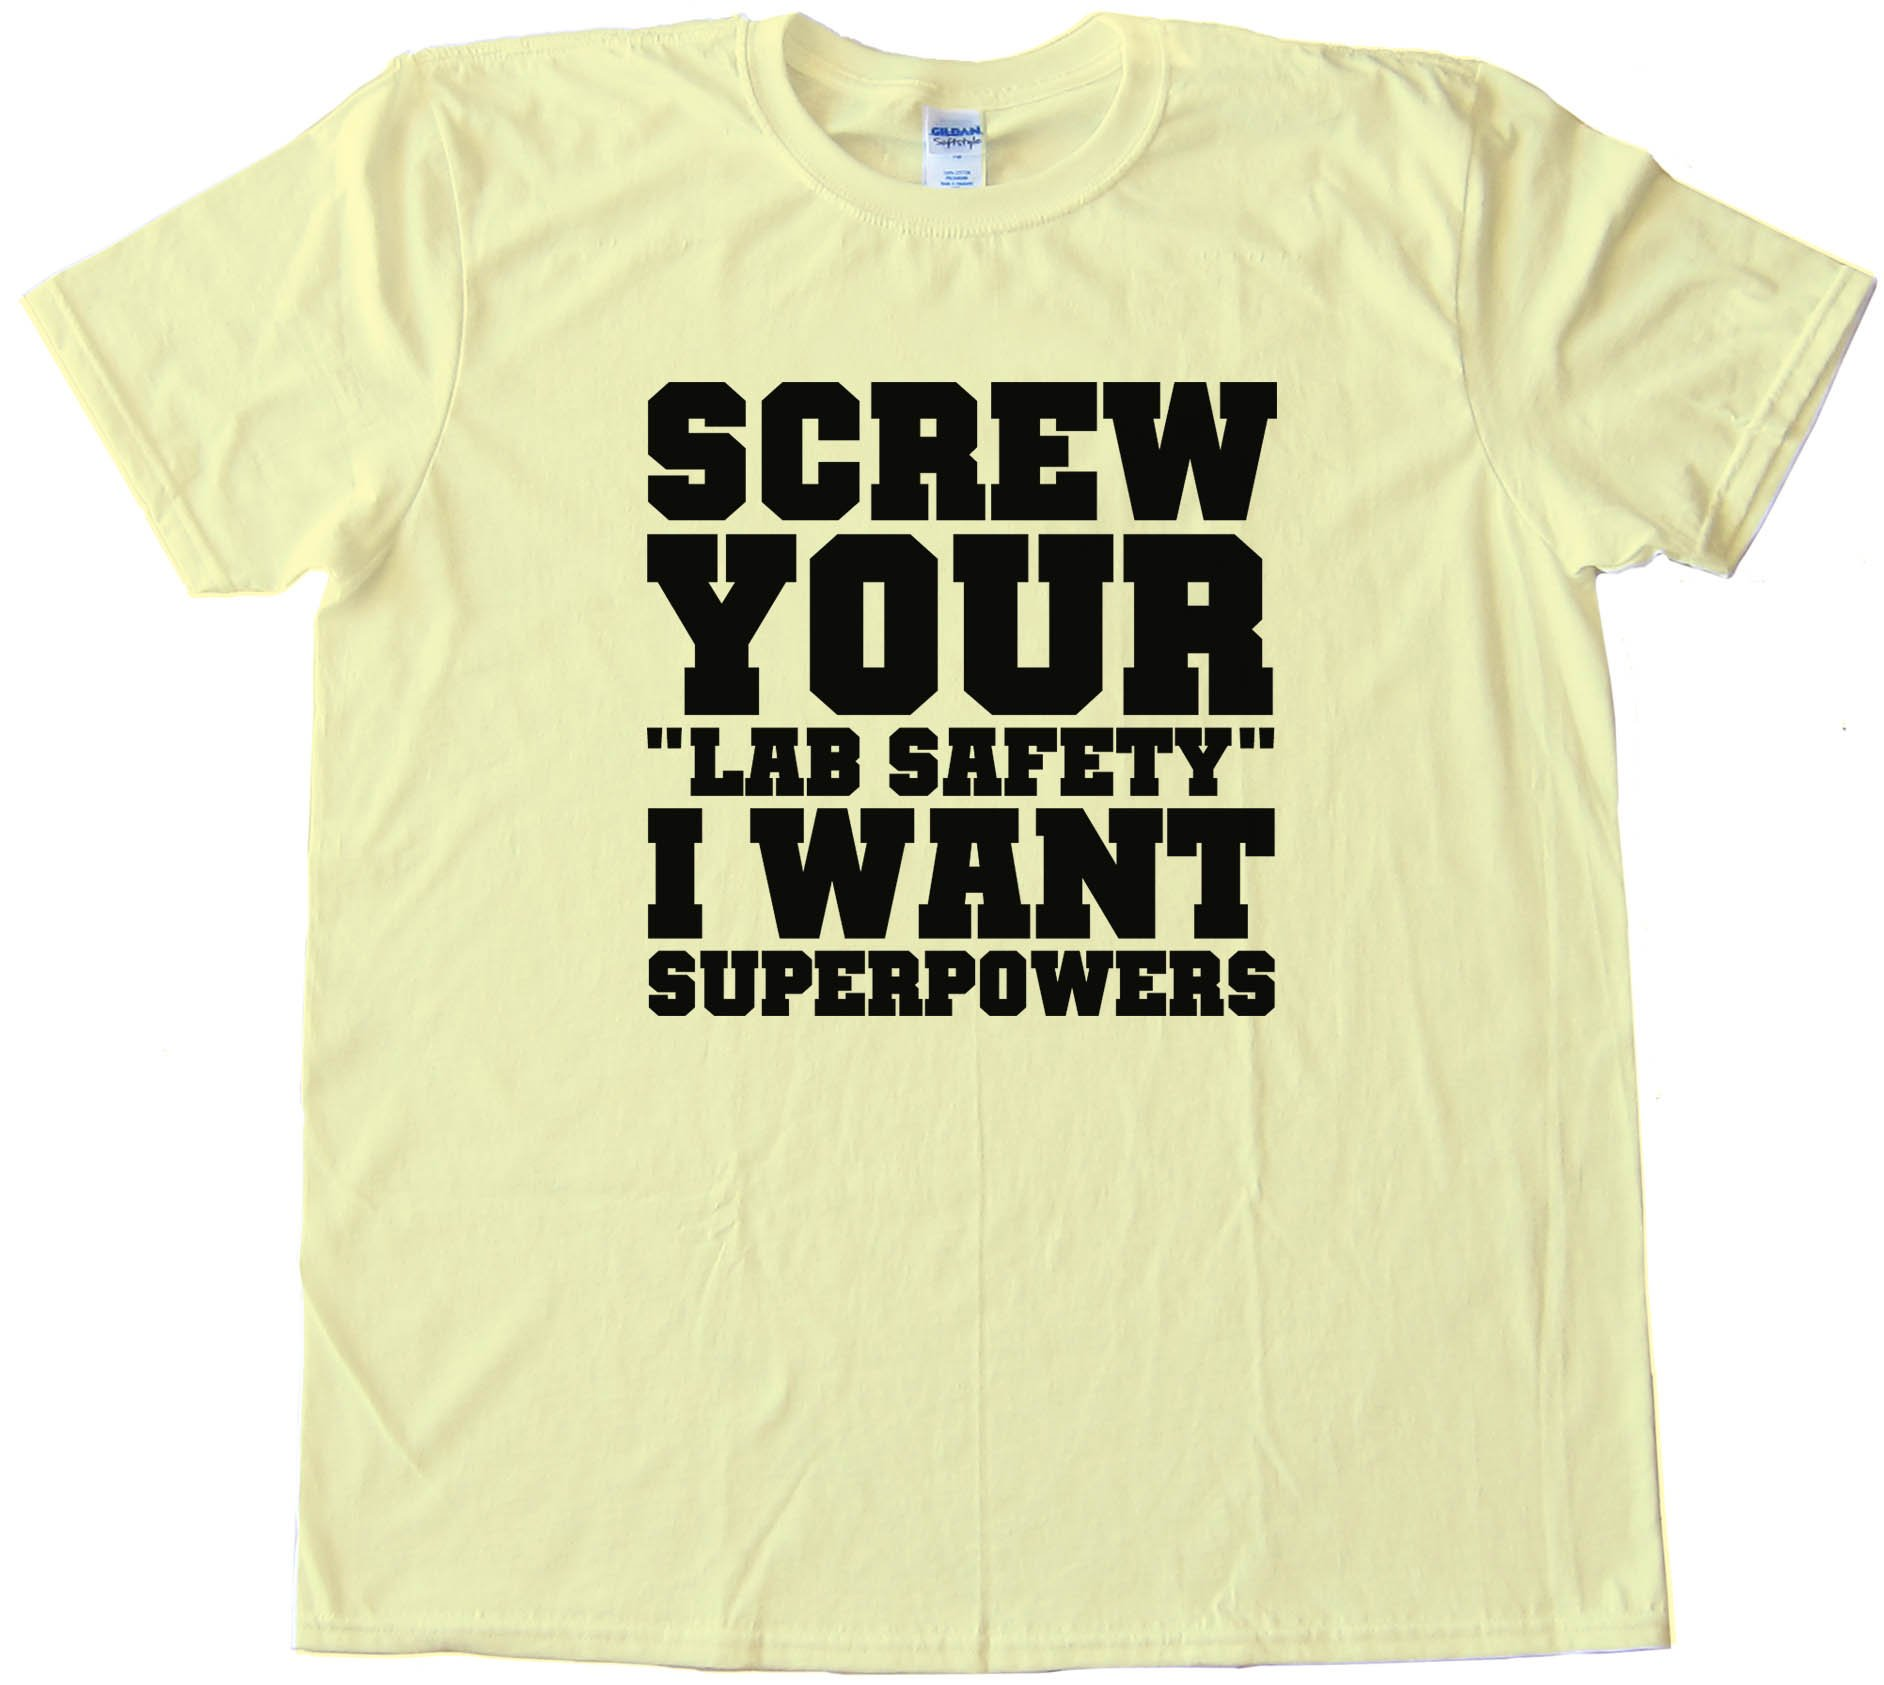 Screw Your Lab Safety I Want Super Powers Tee Shirt